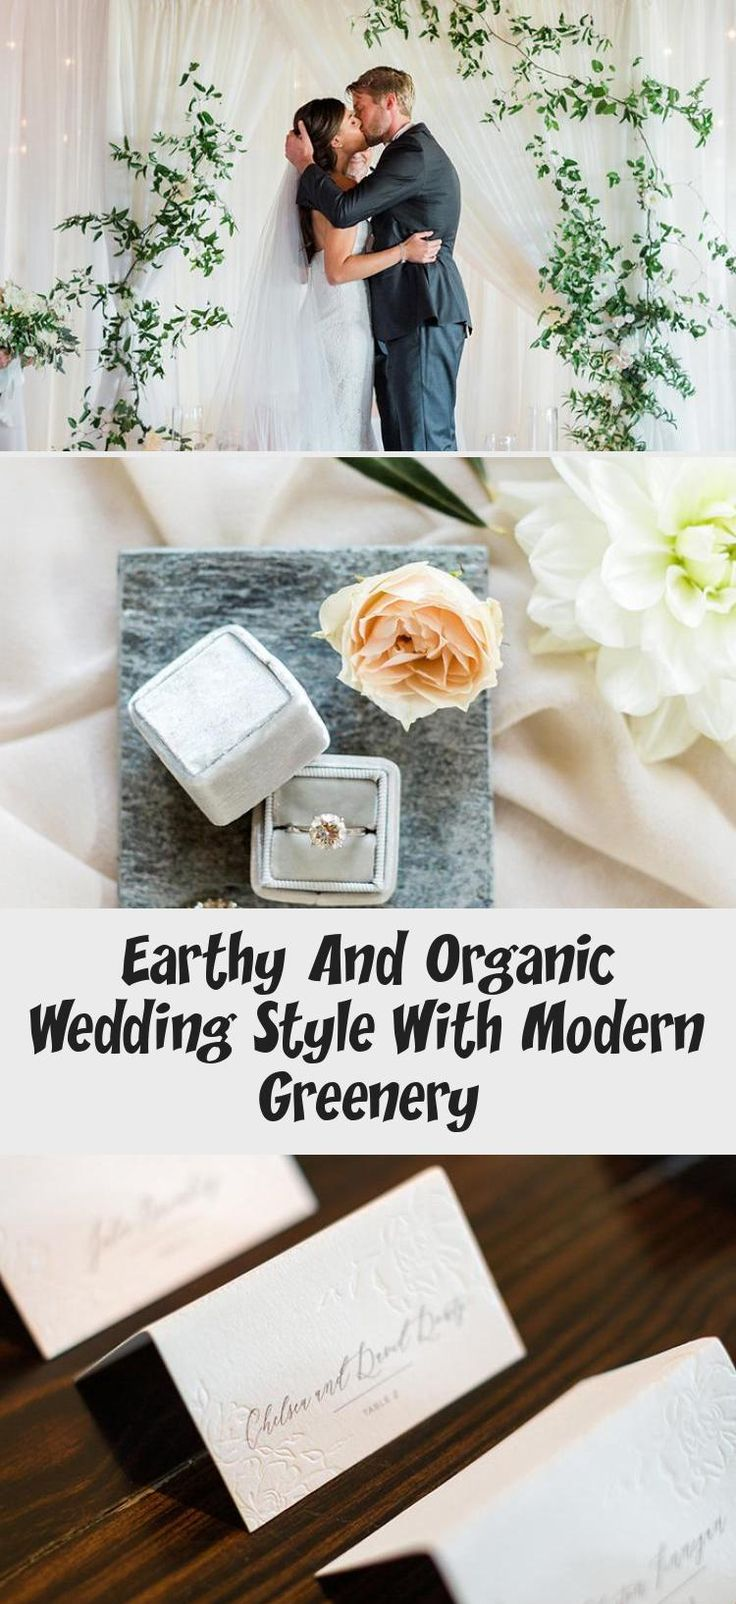 Jan 28, 2020 - Rustic Draped Wedding Ceremony Backdrop with Modern Greenery and Candles